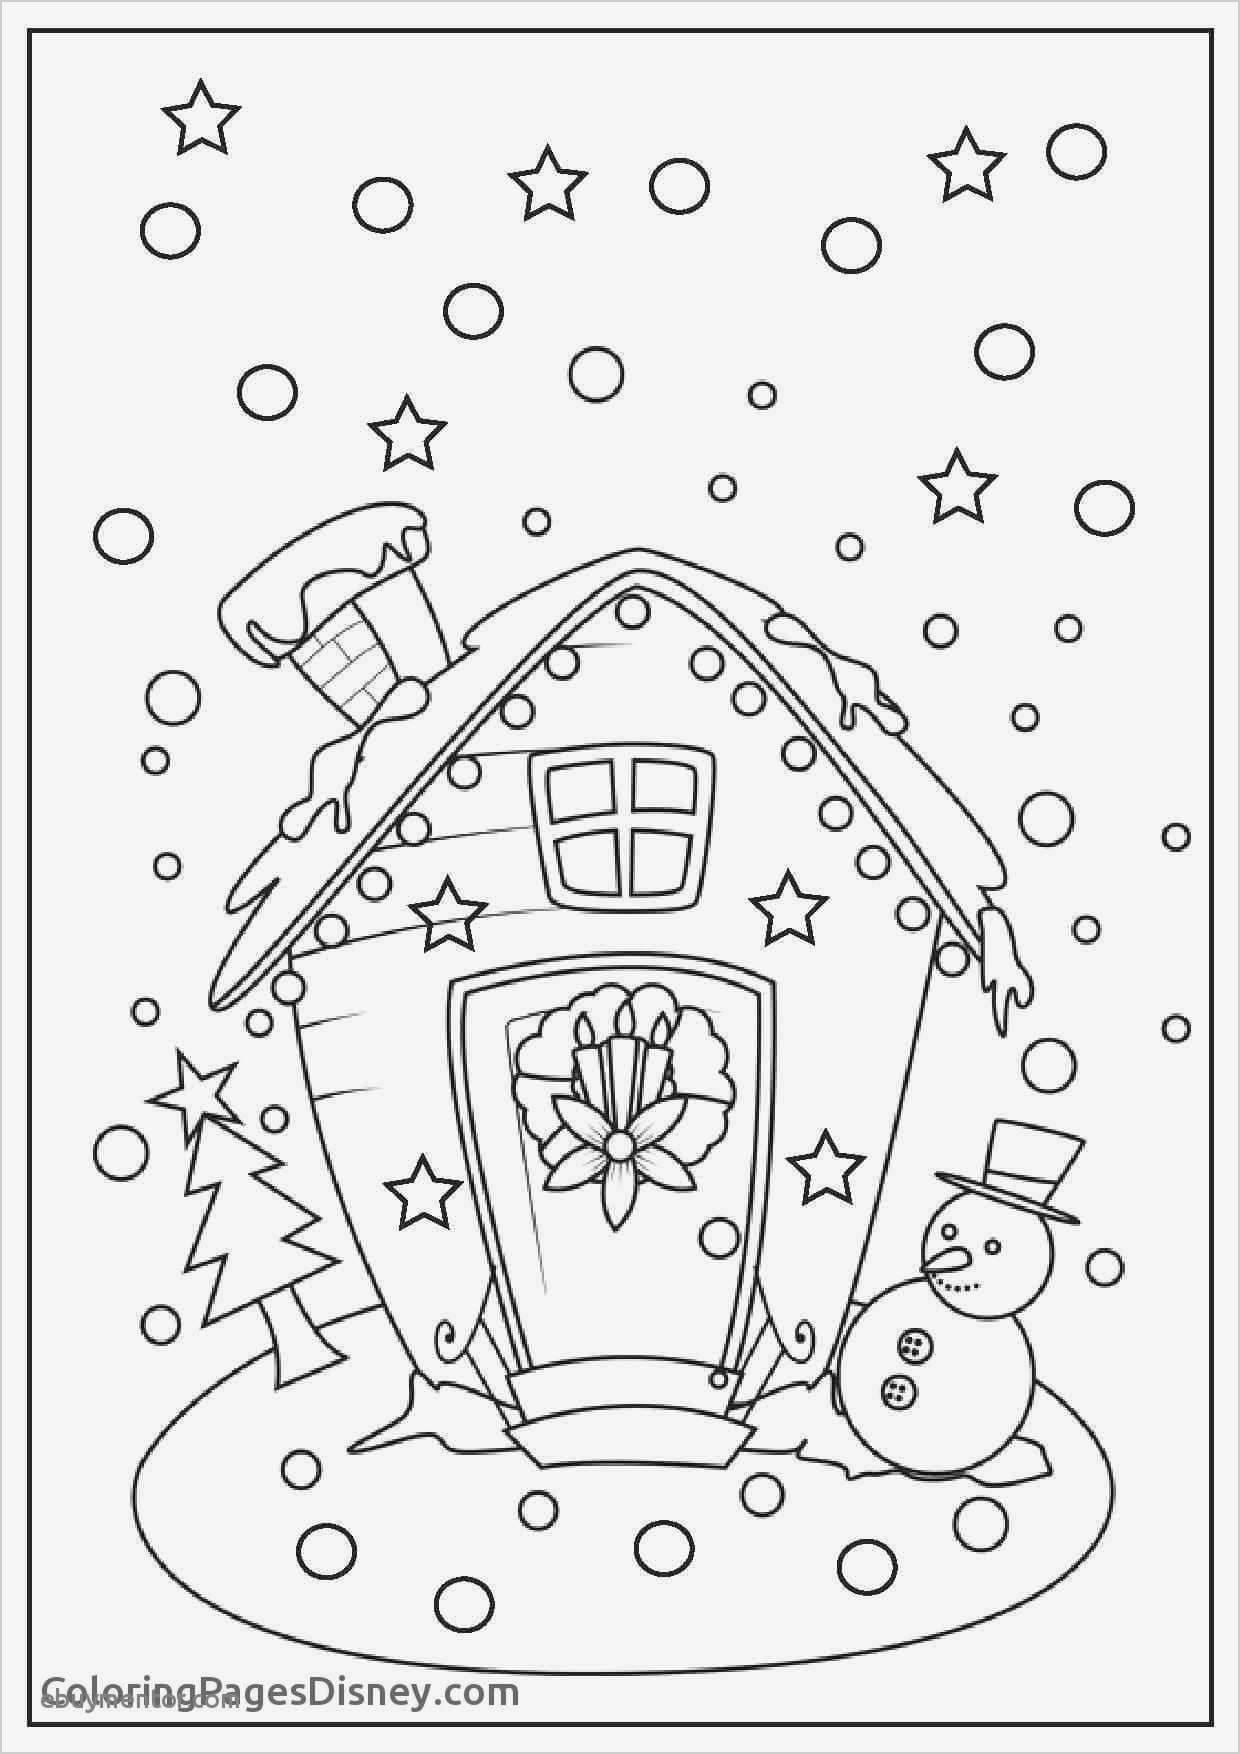 October Calendar Coloring Pages For Preschoolers Fall Free To Print for Coloring Pages October Calendar 2019 Adults